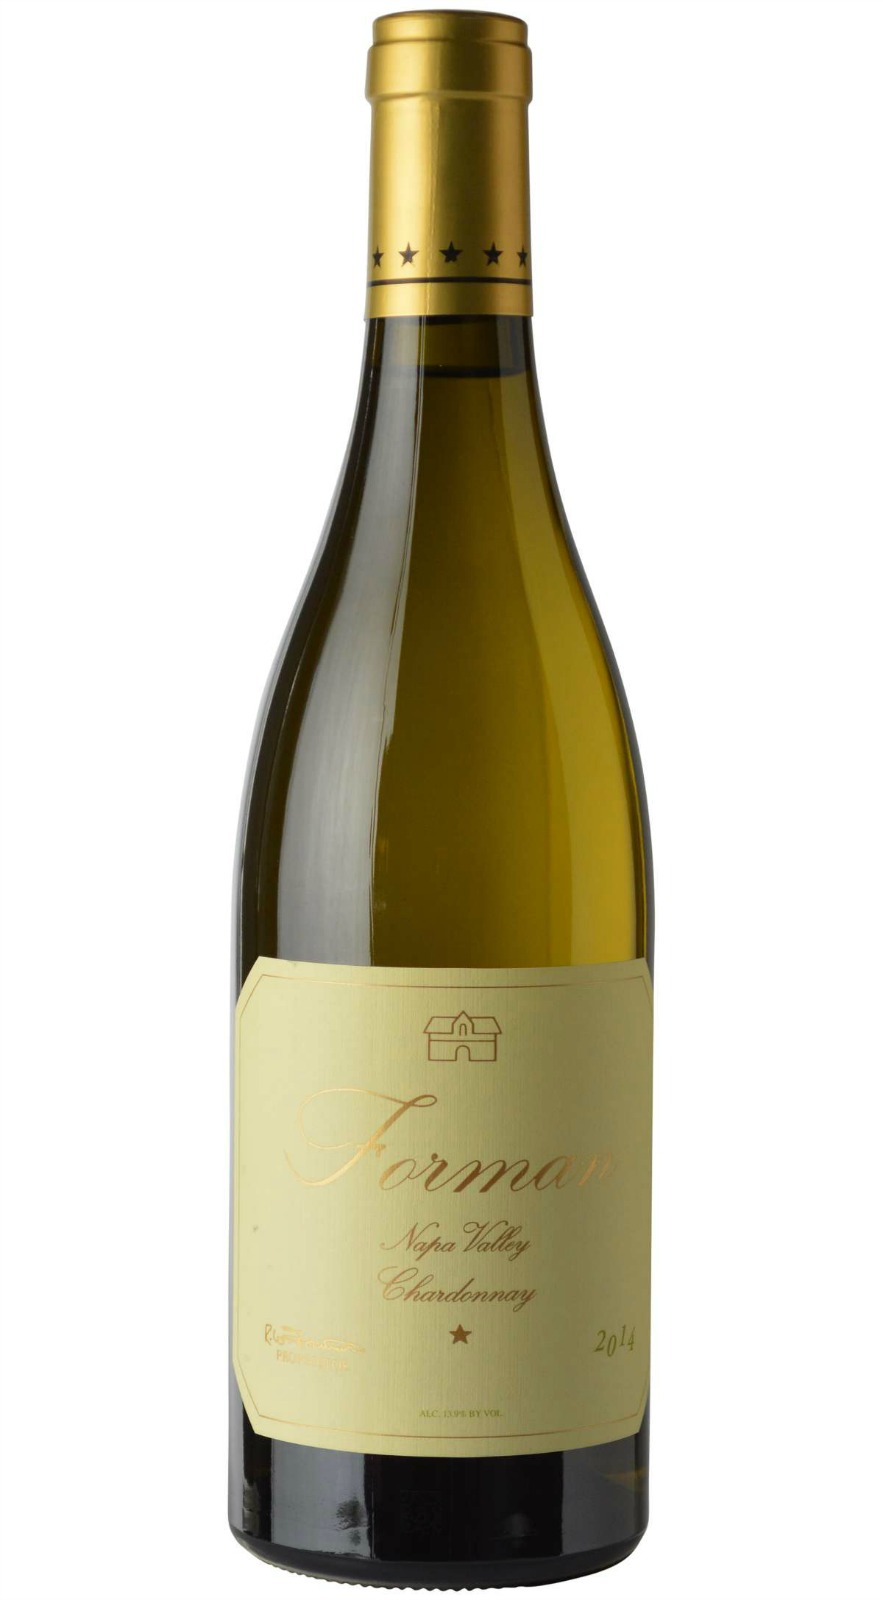 Forman Chardonnay Napa Valley 2014,  (VN95) from The BPW - Merchants of rare and fine wines.